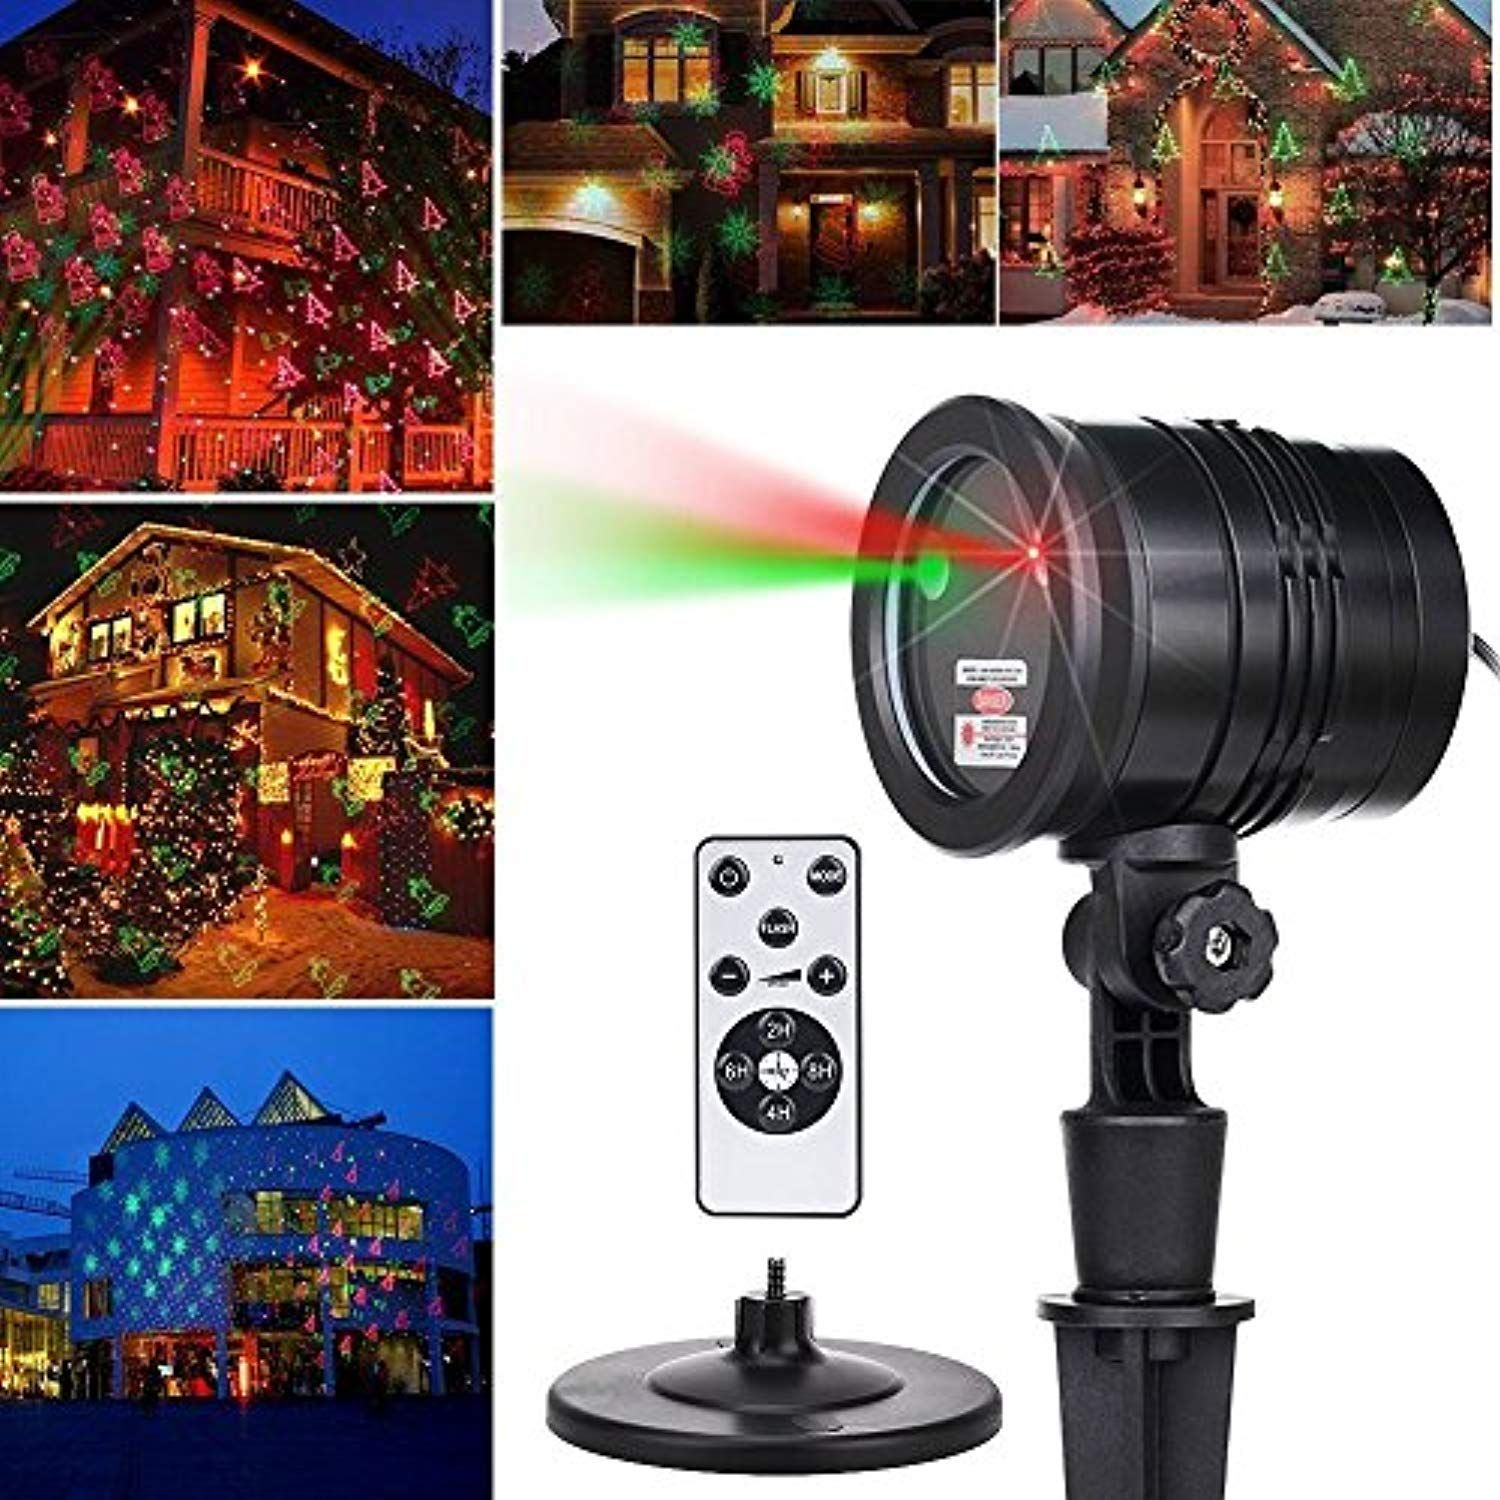 Laser Decorative Lights Garden Laser Light Projector